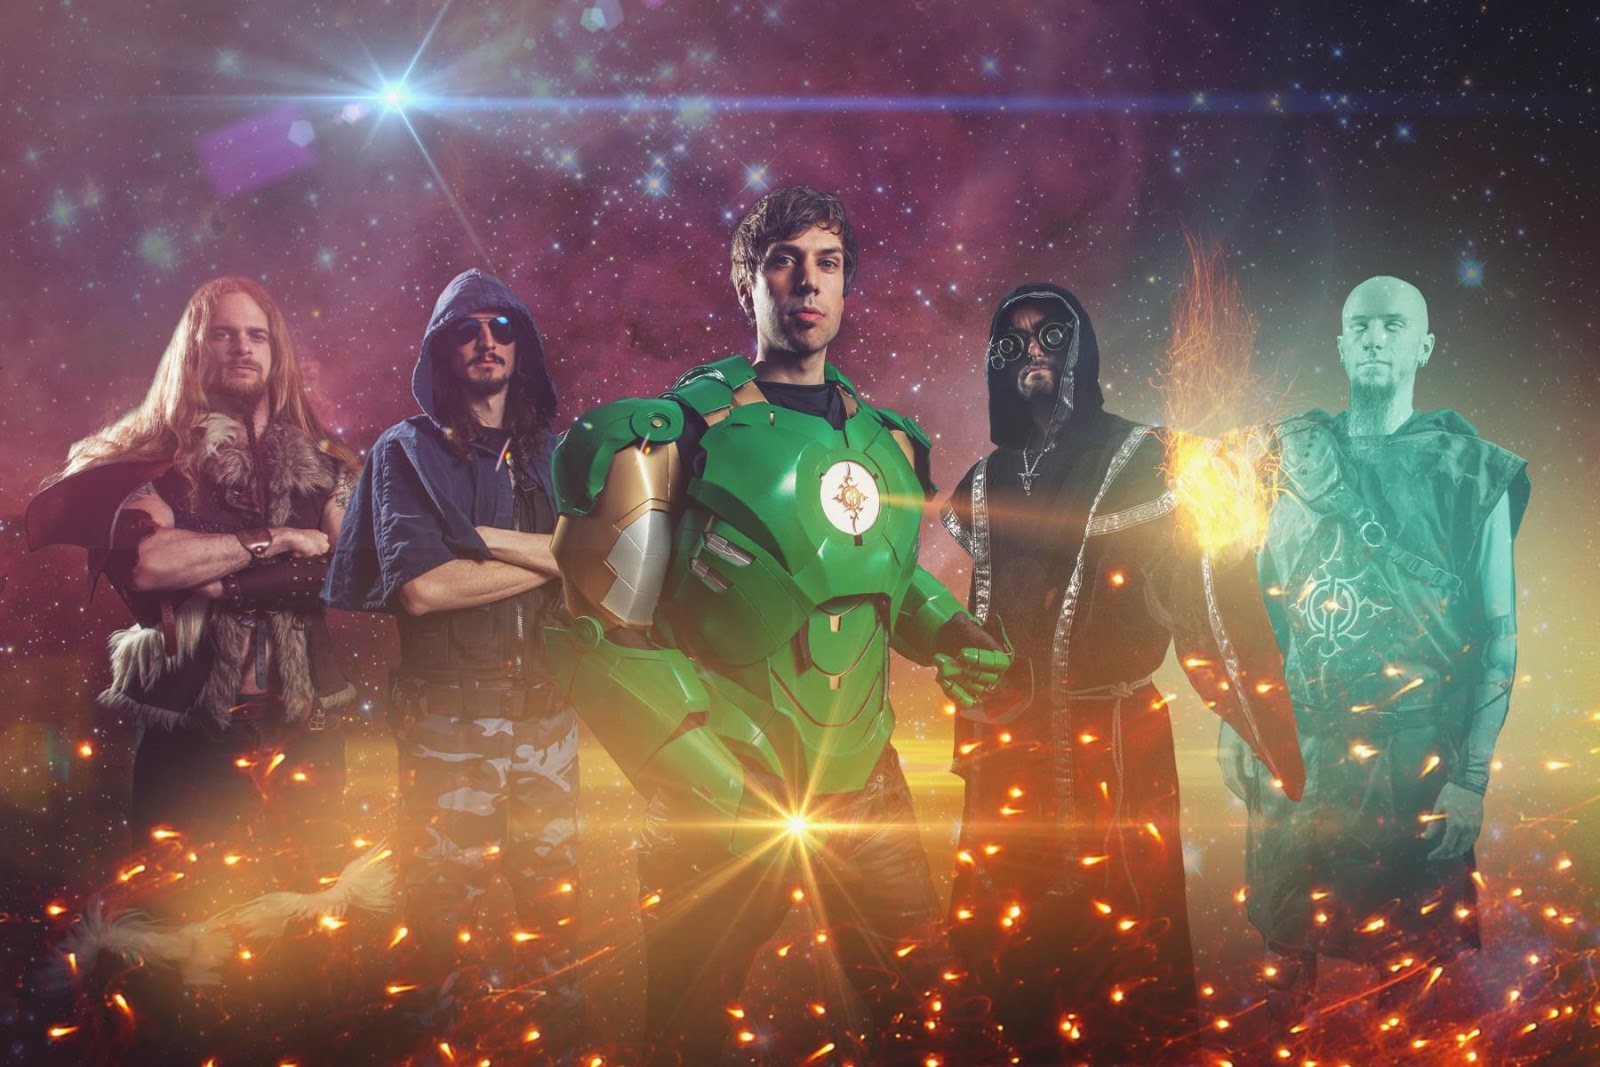 gloryhammer rise of the chaos wizards